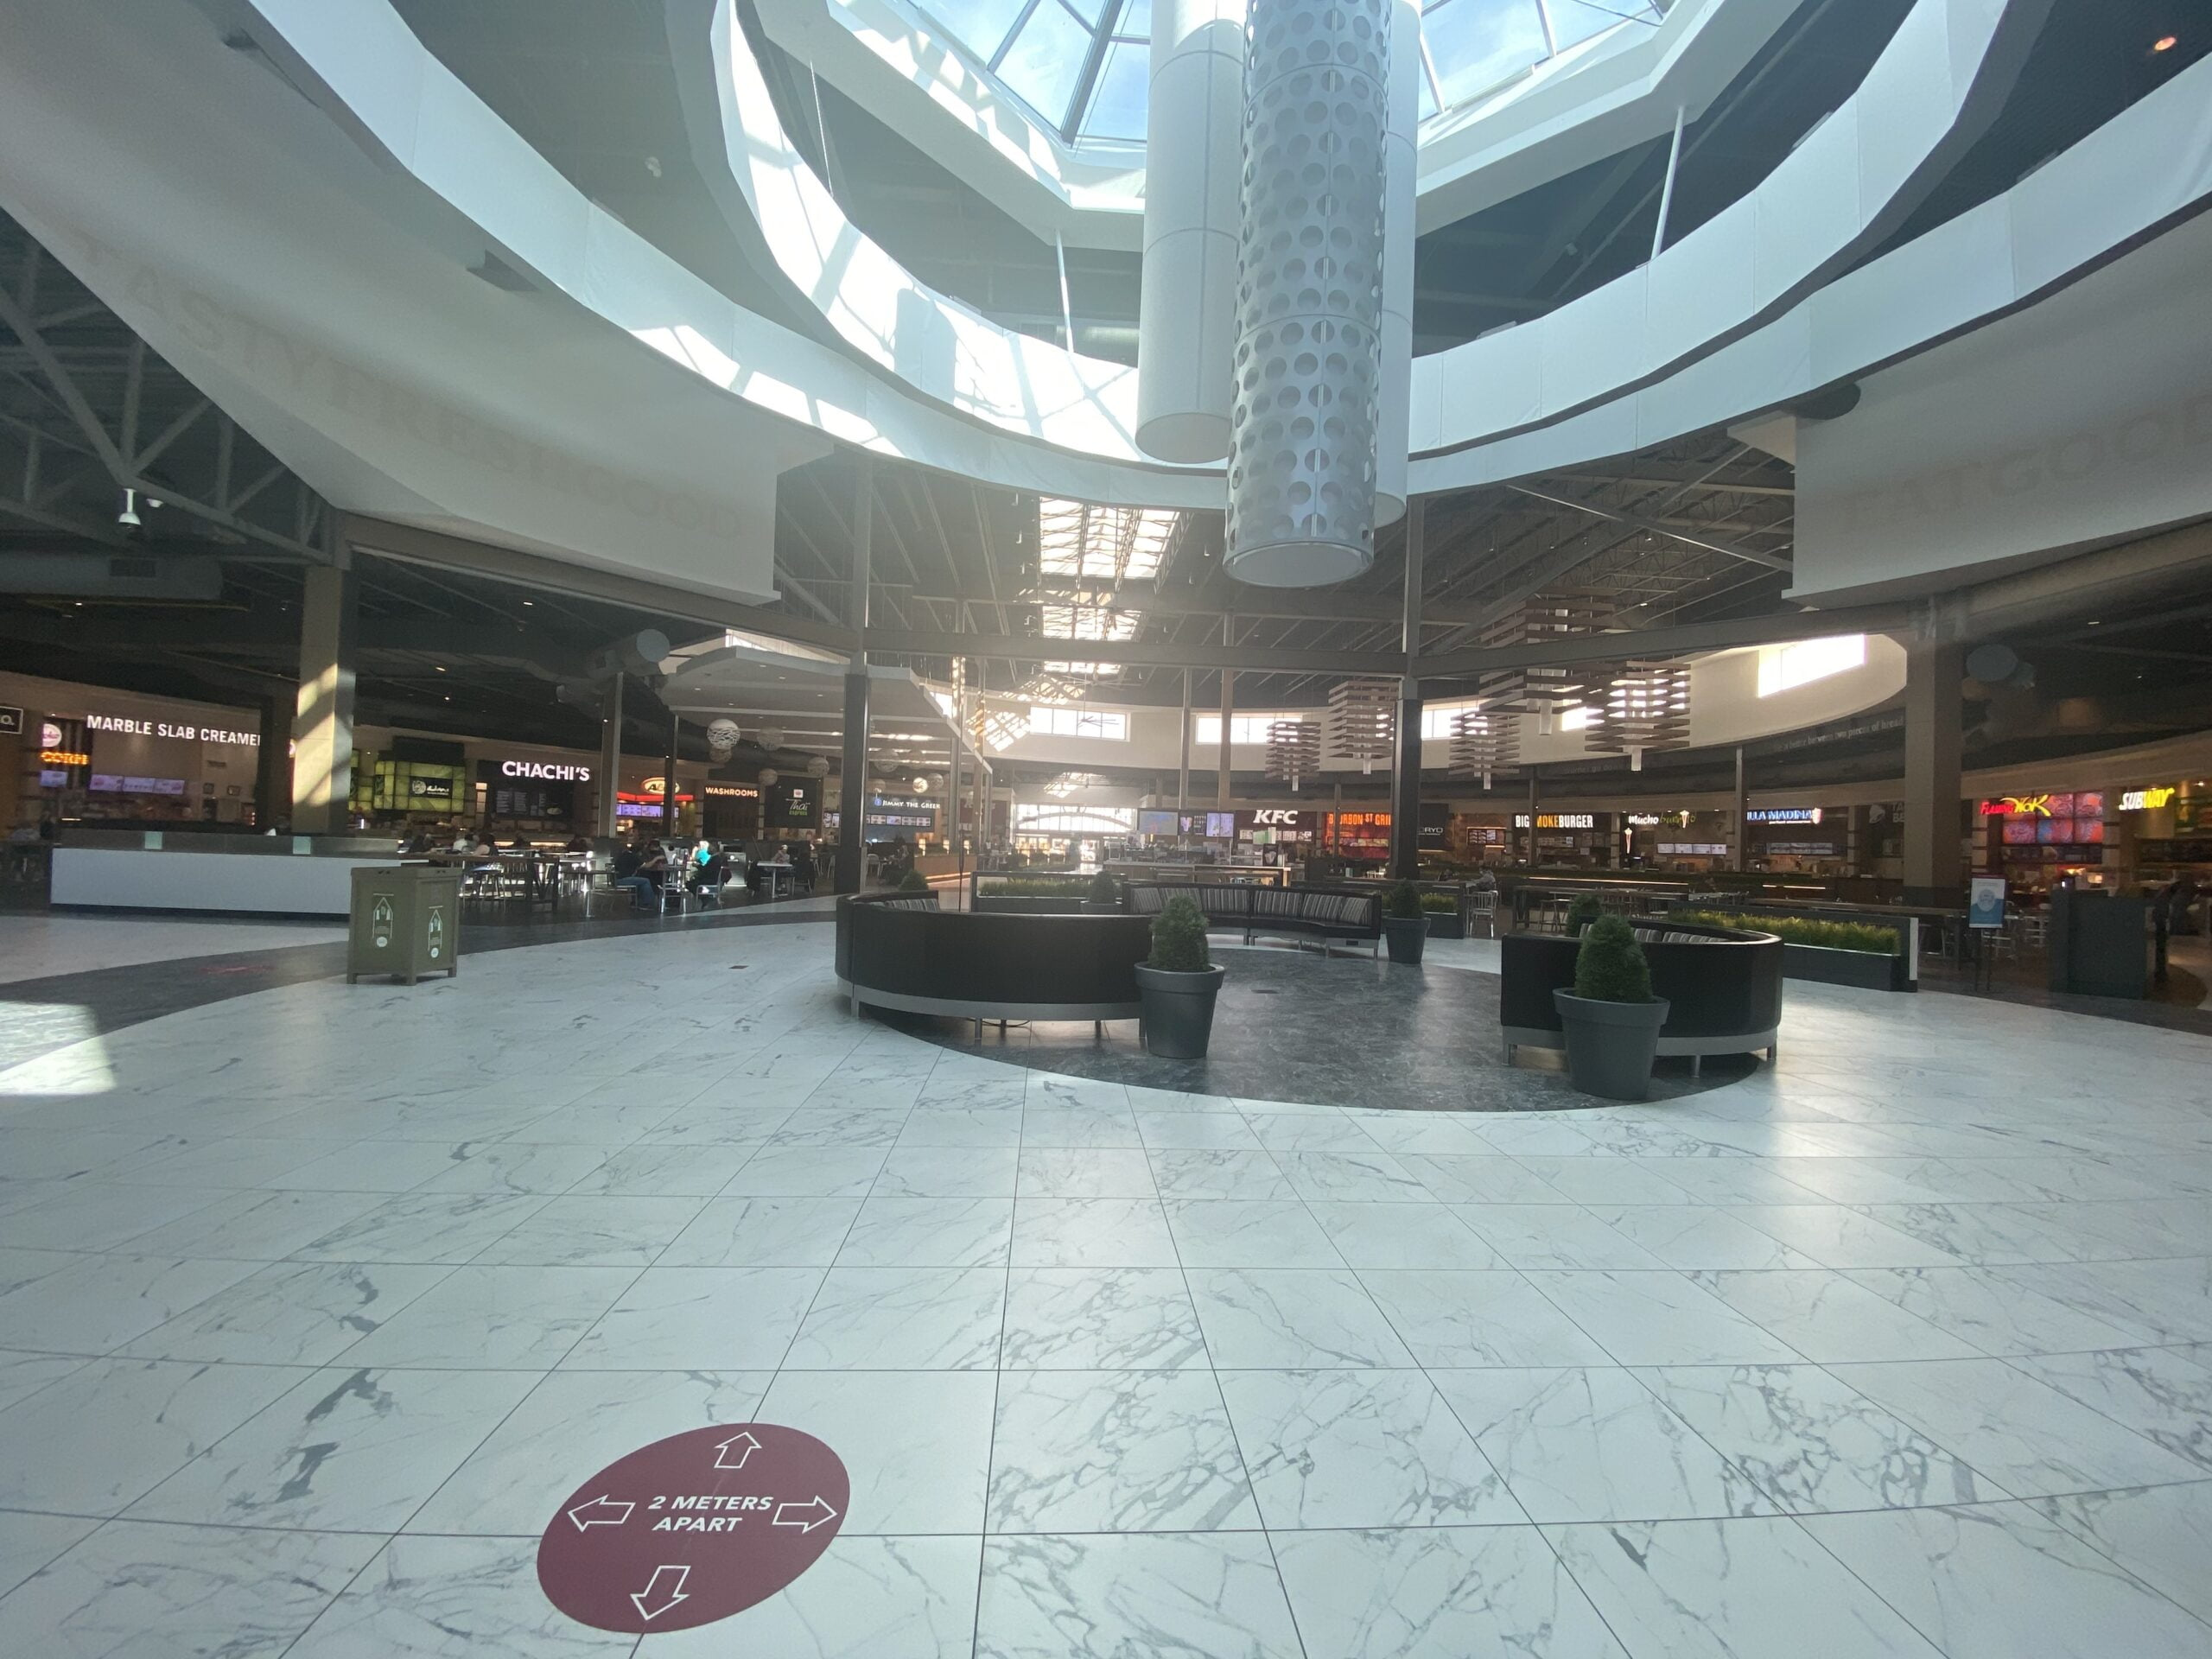 Centre of Food Hall in Entertainment Neighbourhood